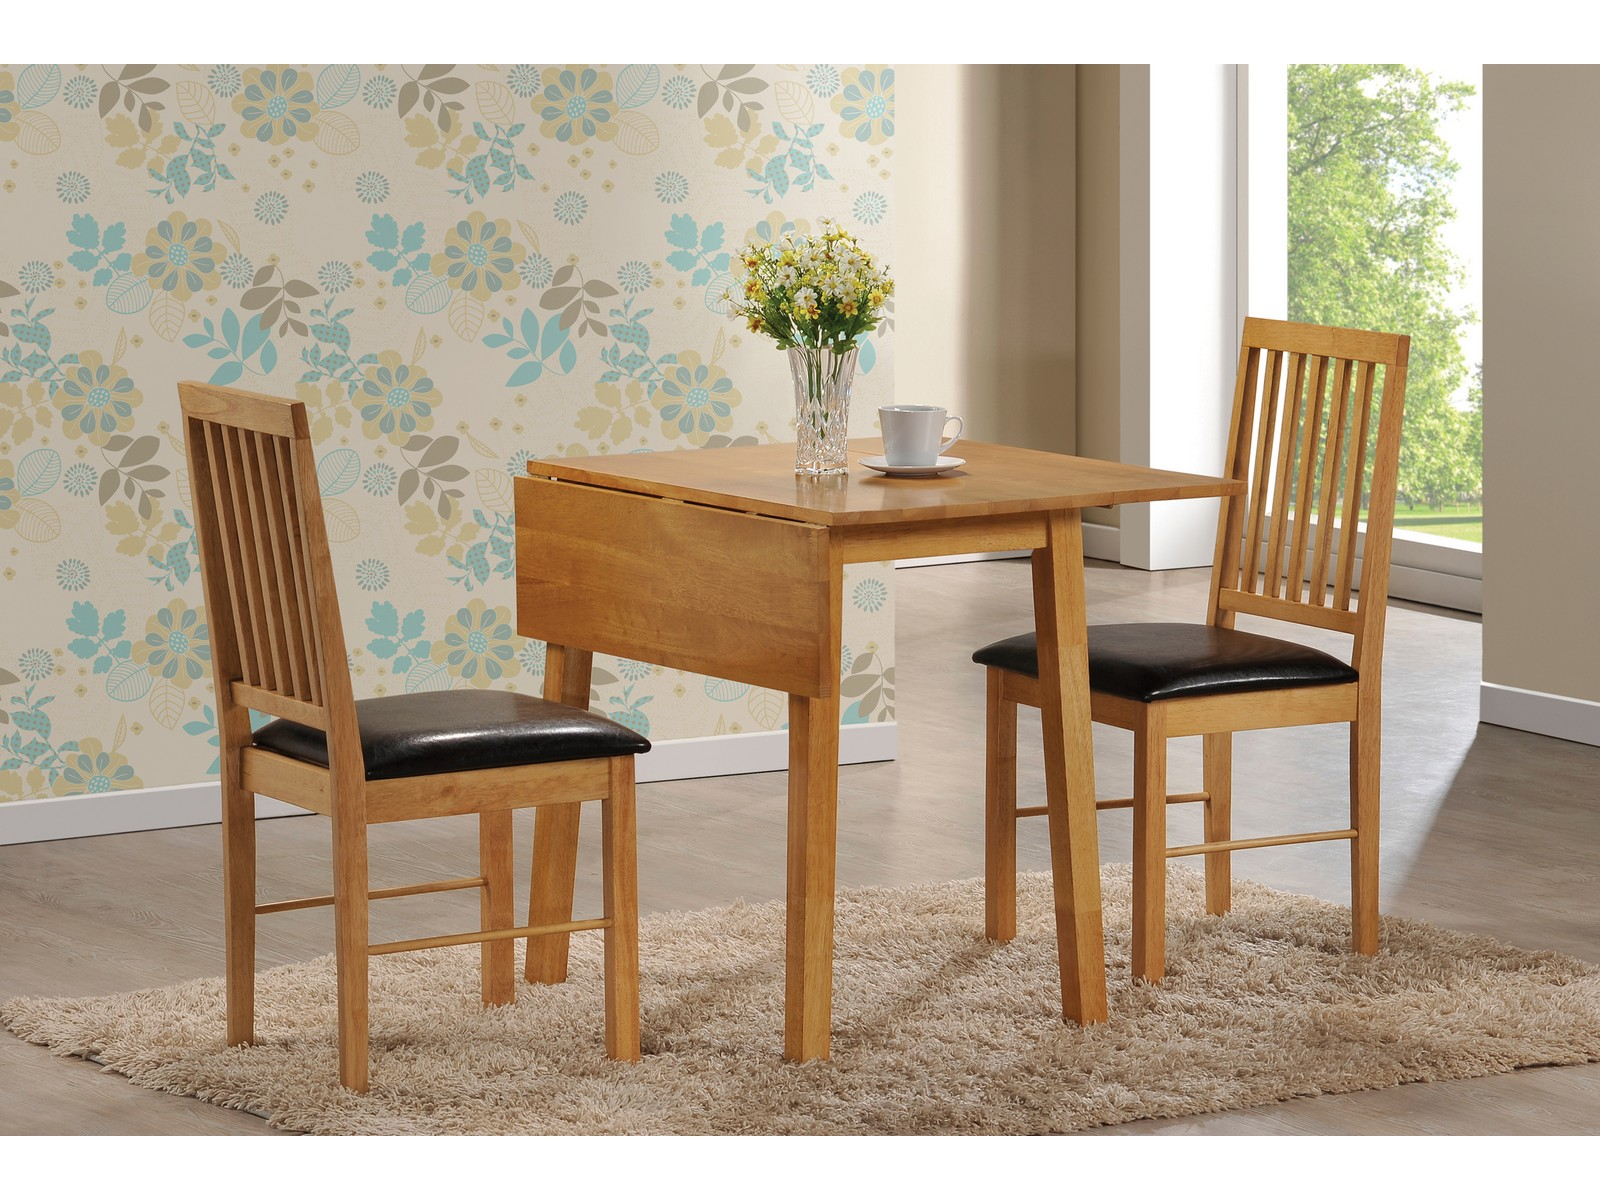 Palma drop leaf dining table and 2 faux leather chairs oak